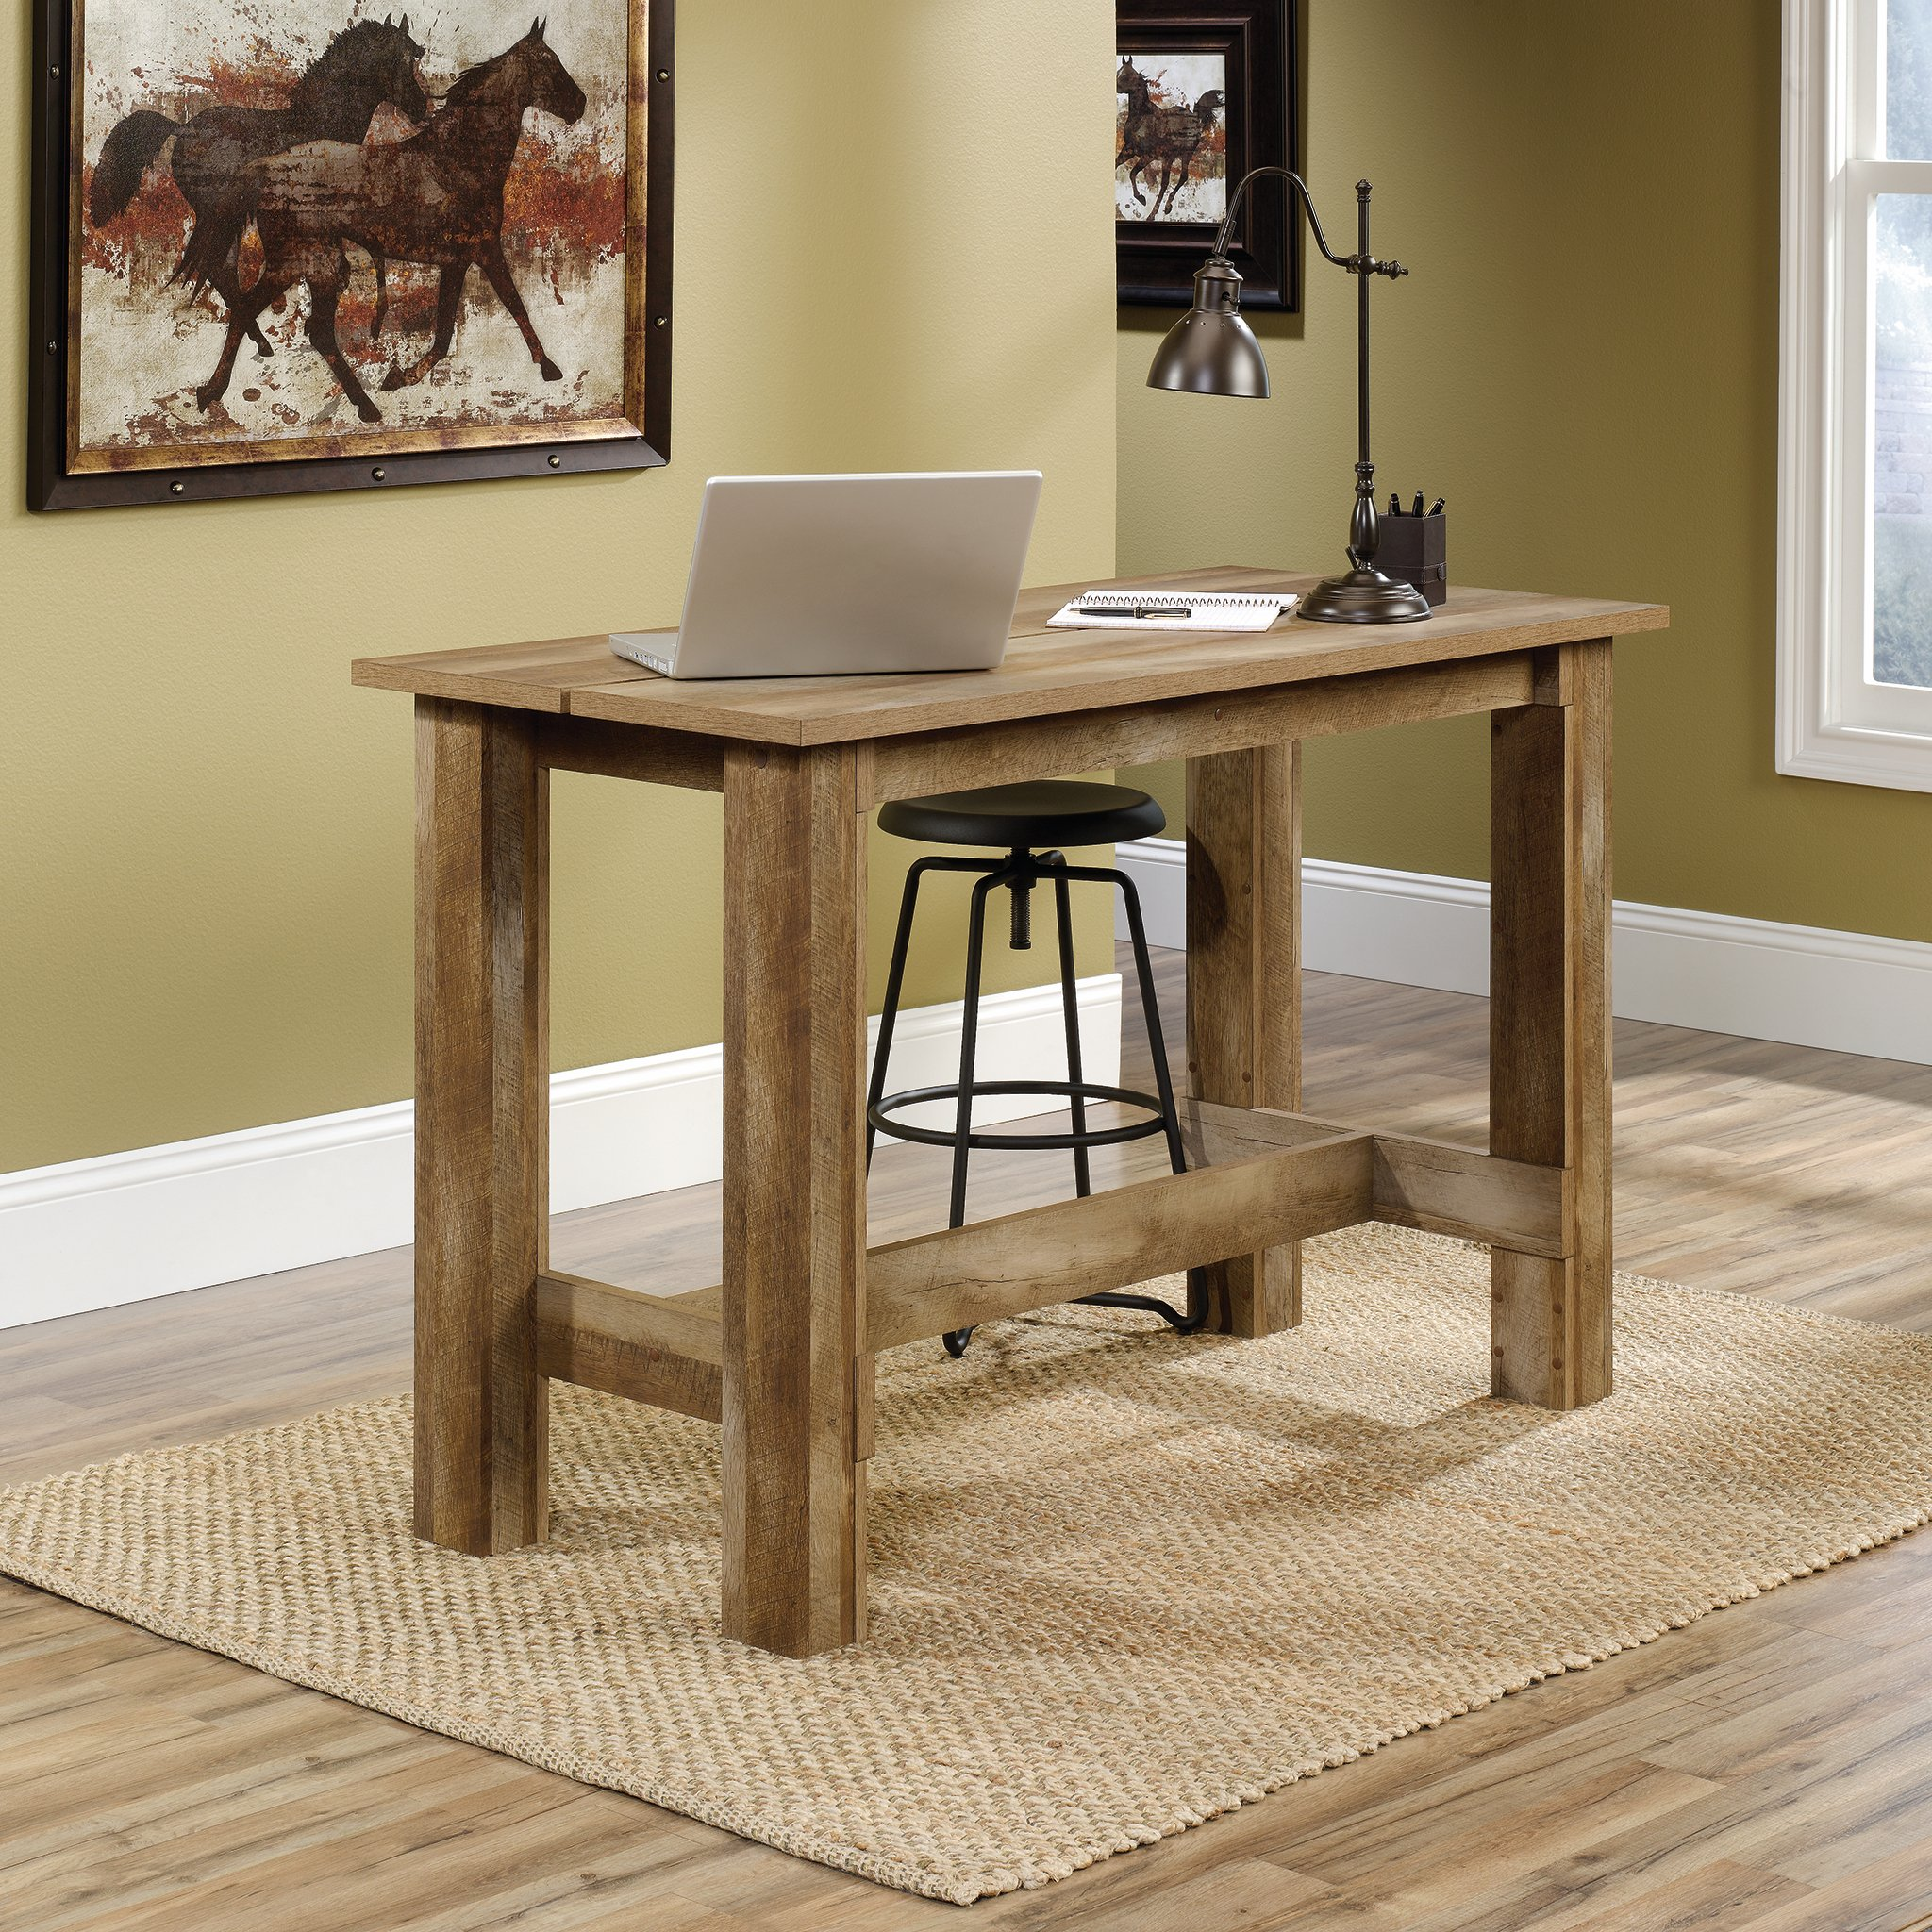 Sauder 416698 Boone Mountain Counter Height Dining Table